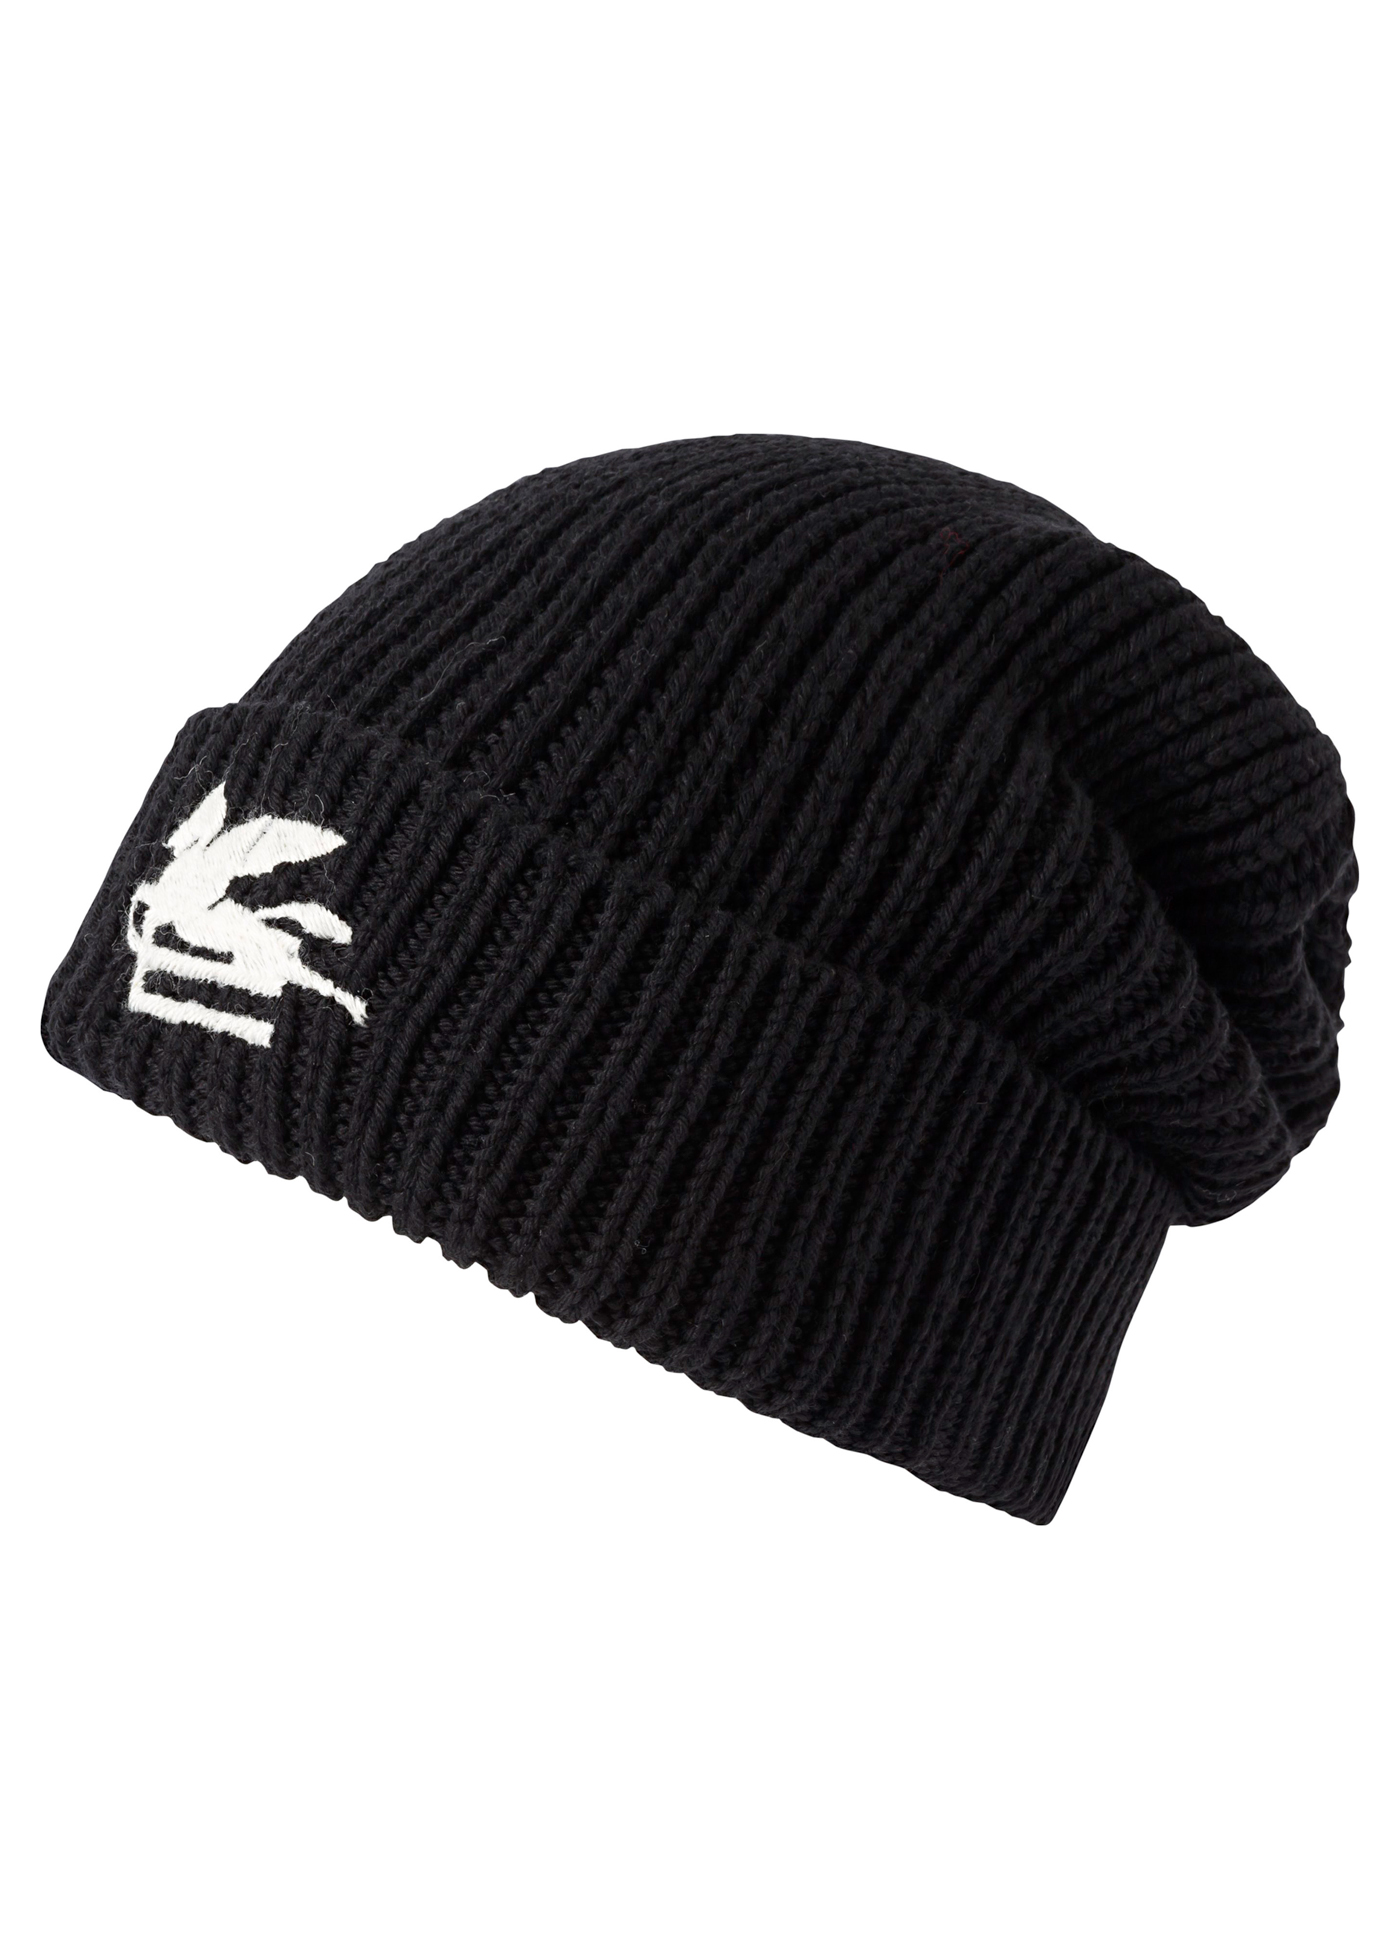 CAPPELLO TRICOT image number 0